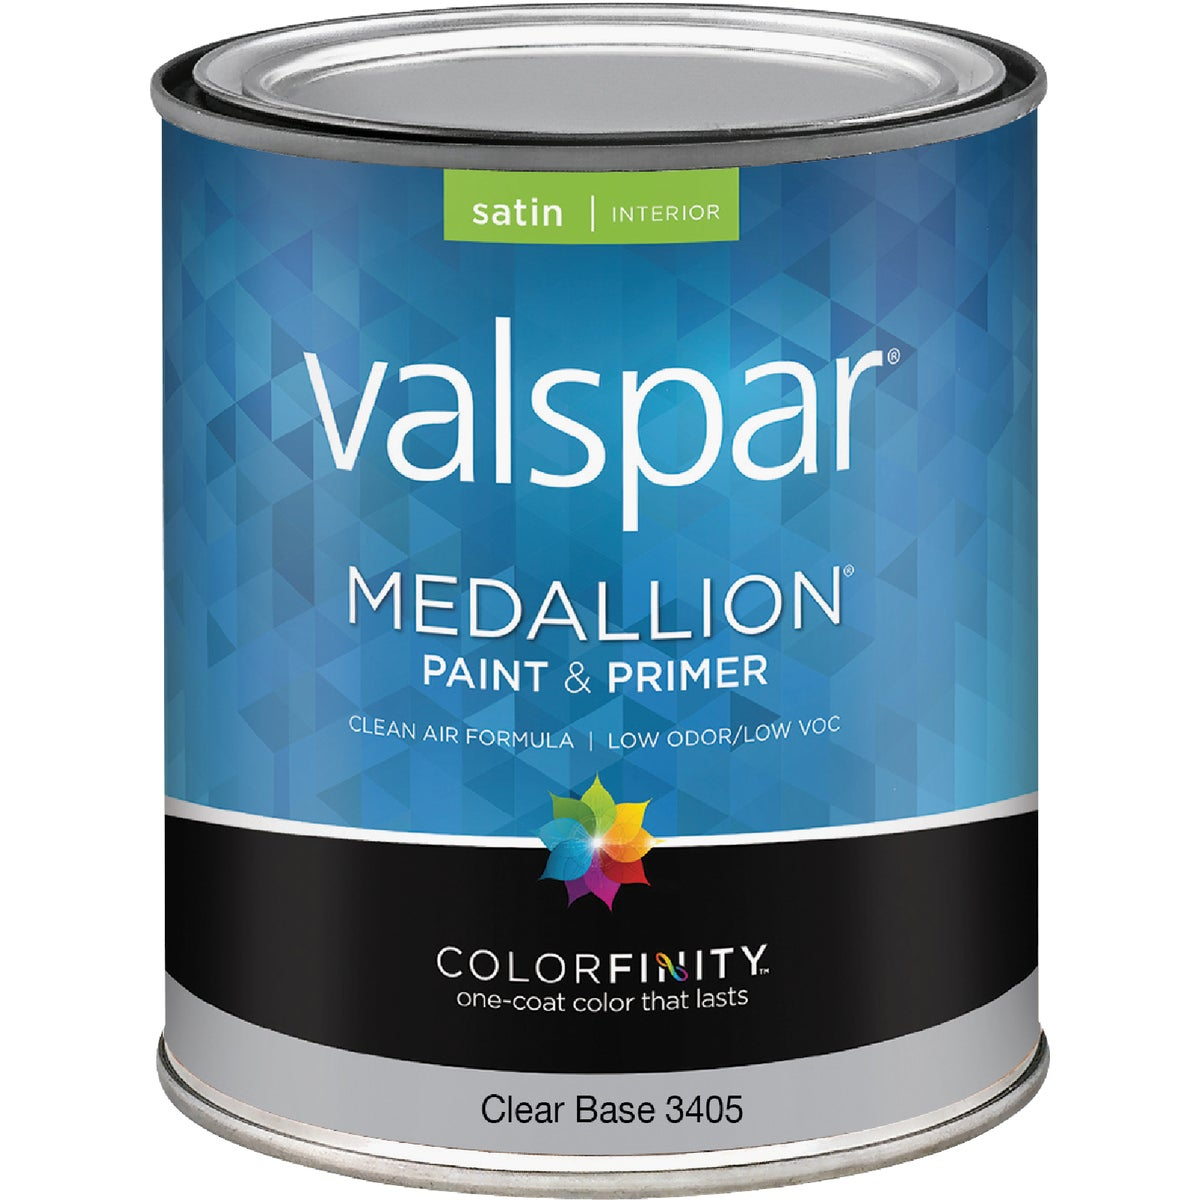 INT SAT CLEAR BS PAINT - 027.0003405.005 by Valspar Corp